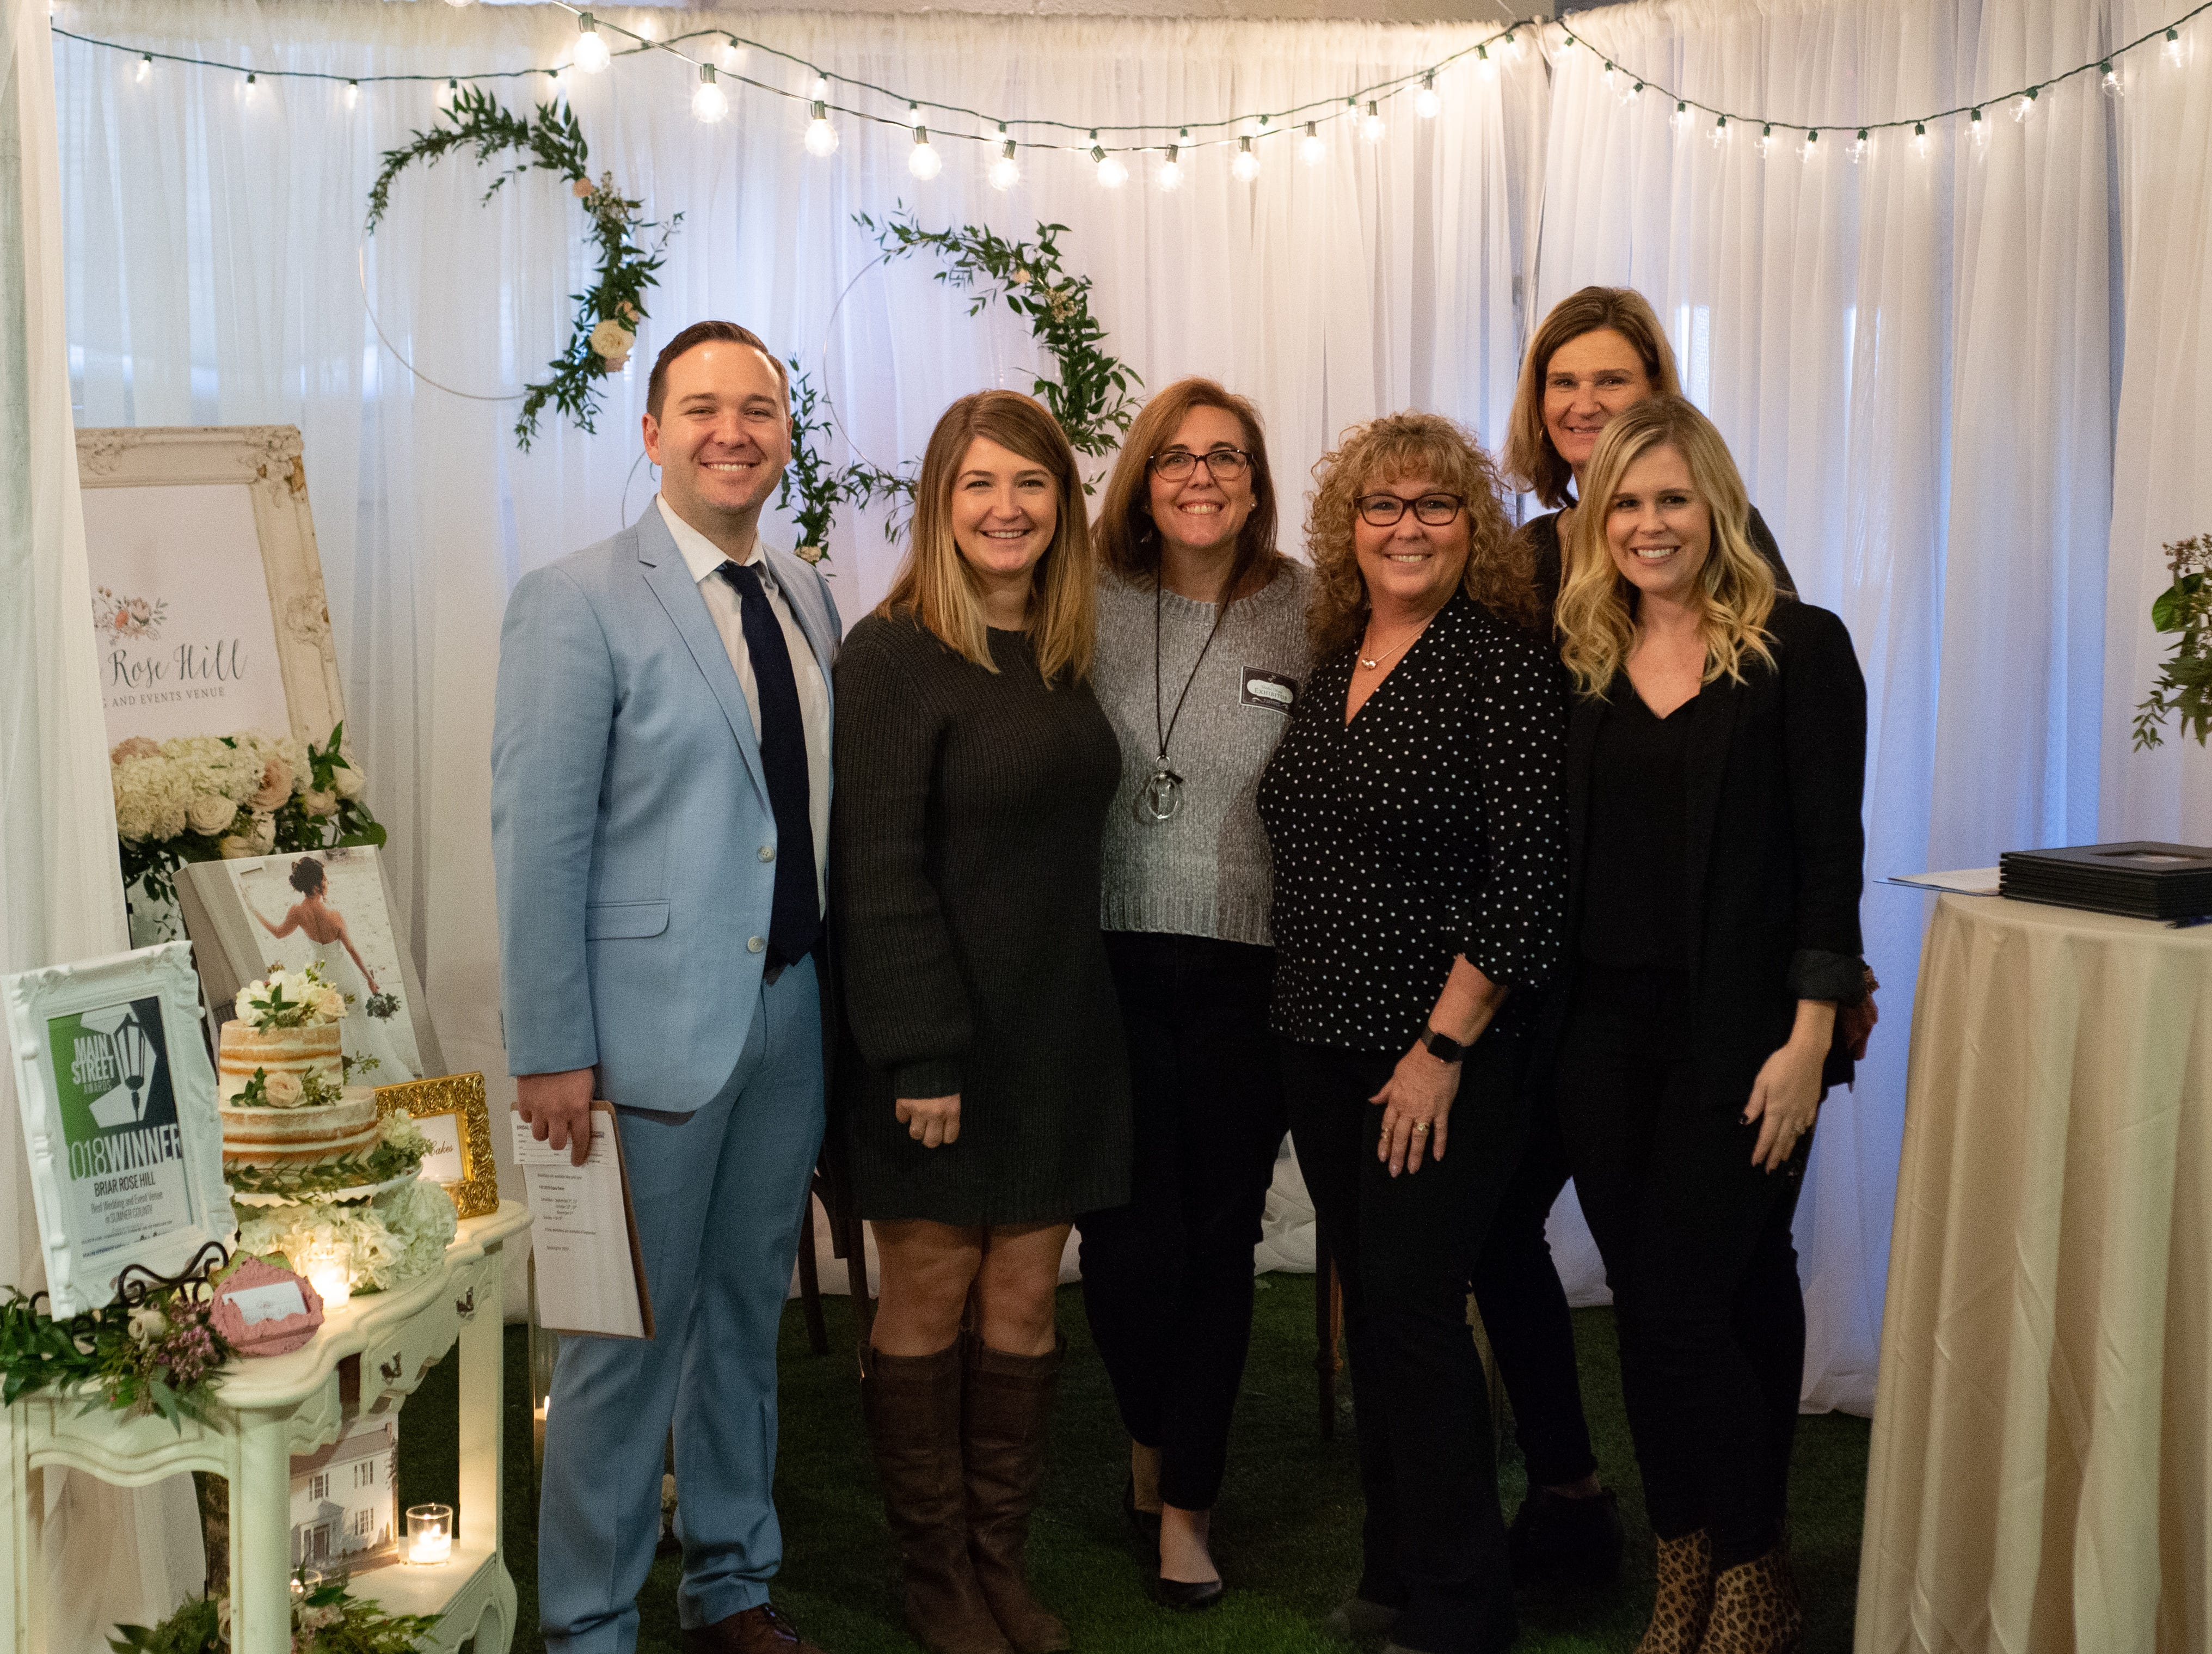 Briar Rose Hill, wedding and events venue, took time for the Sumner County Bridal Show at Epic Event Center in Gallatin on Sunday, Jan. 27.